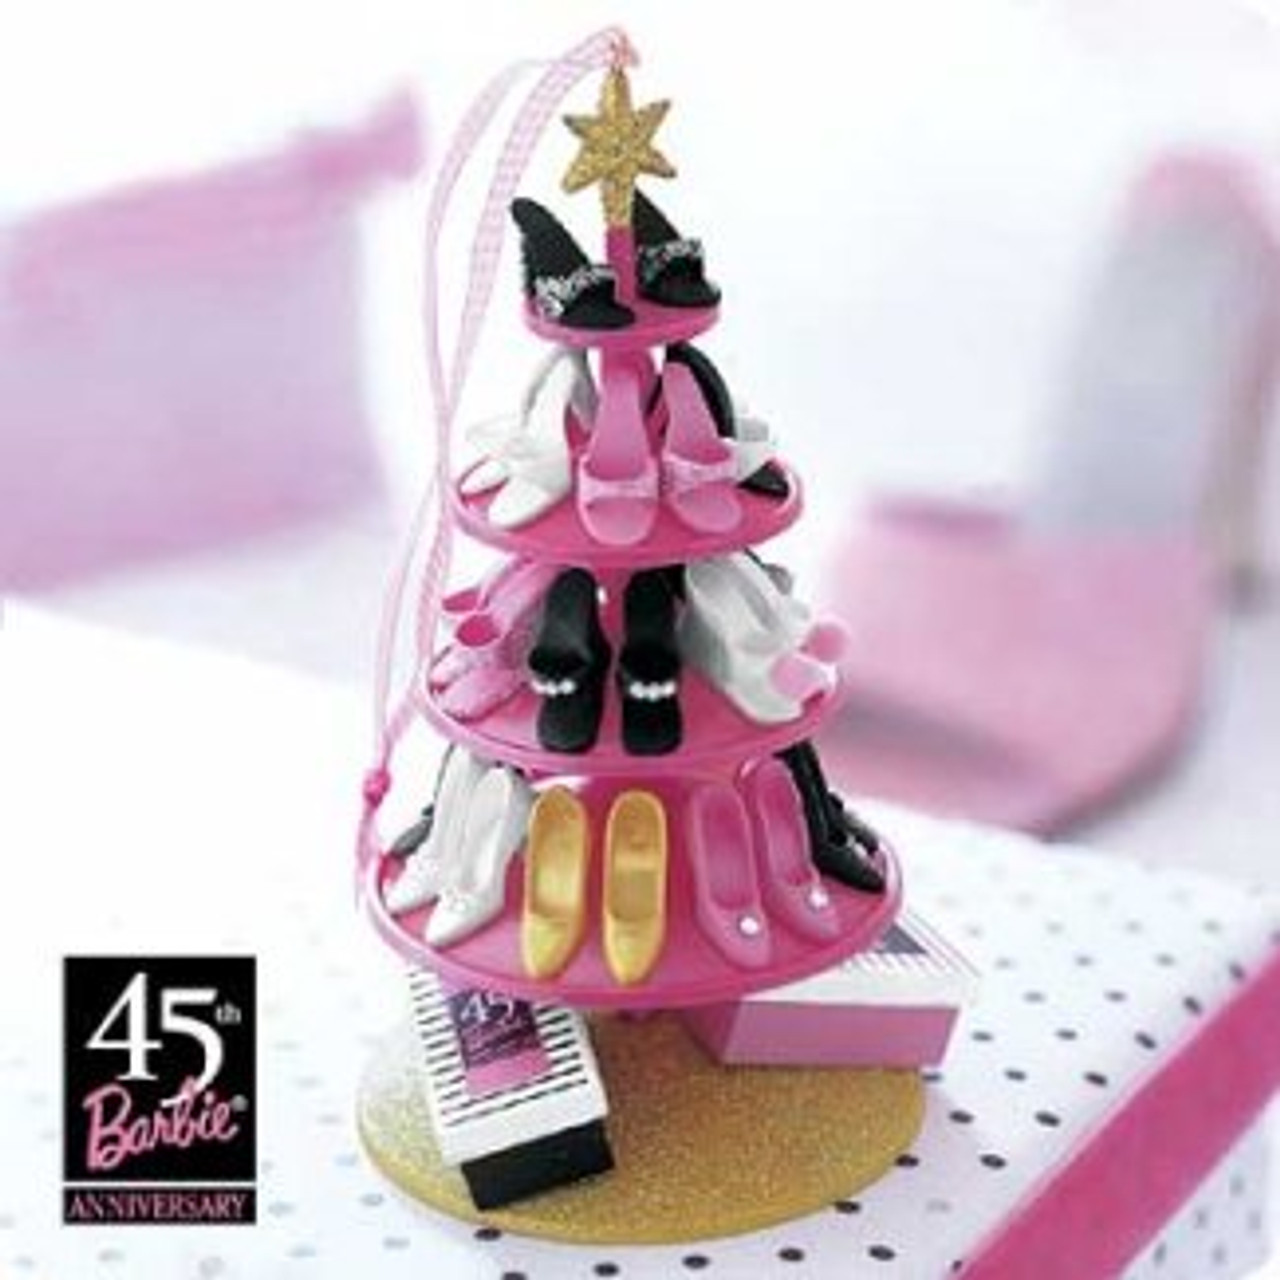 Christmas Shoe Tree.2004 Barbie Shoe Tree